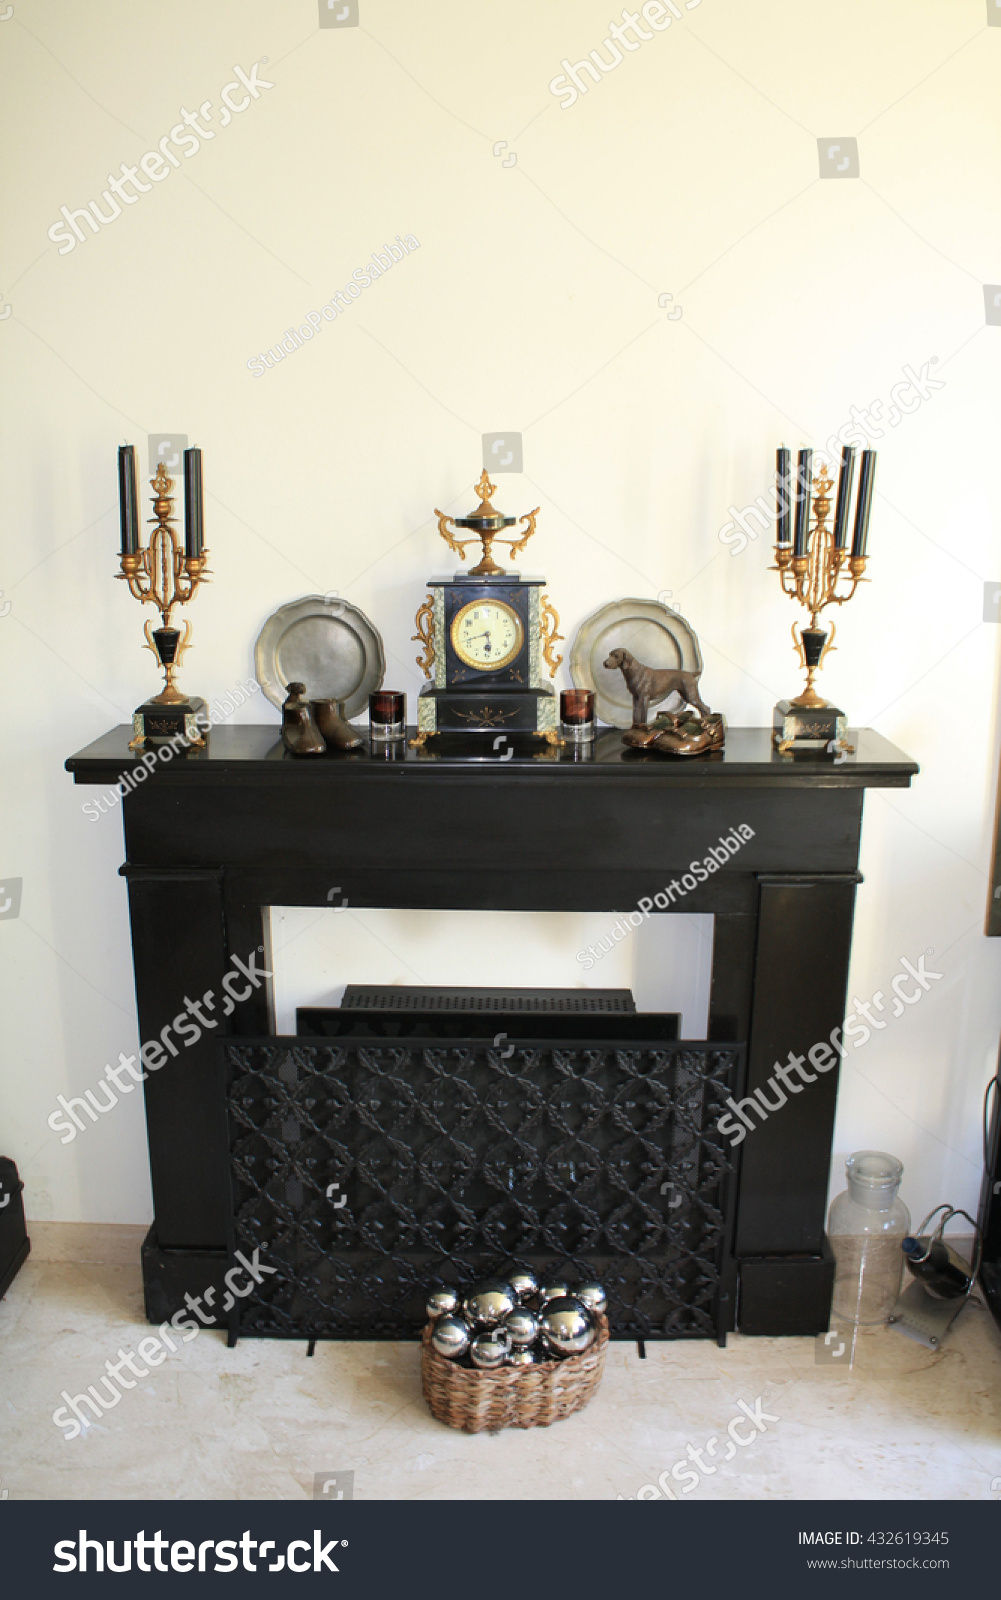 Black Marble Fireplace Antique Clock Matching Stock Photo Edit Now 432619345